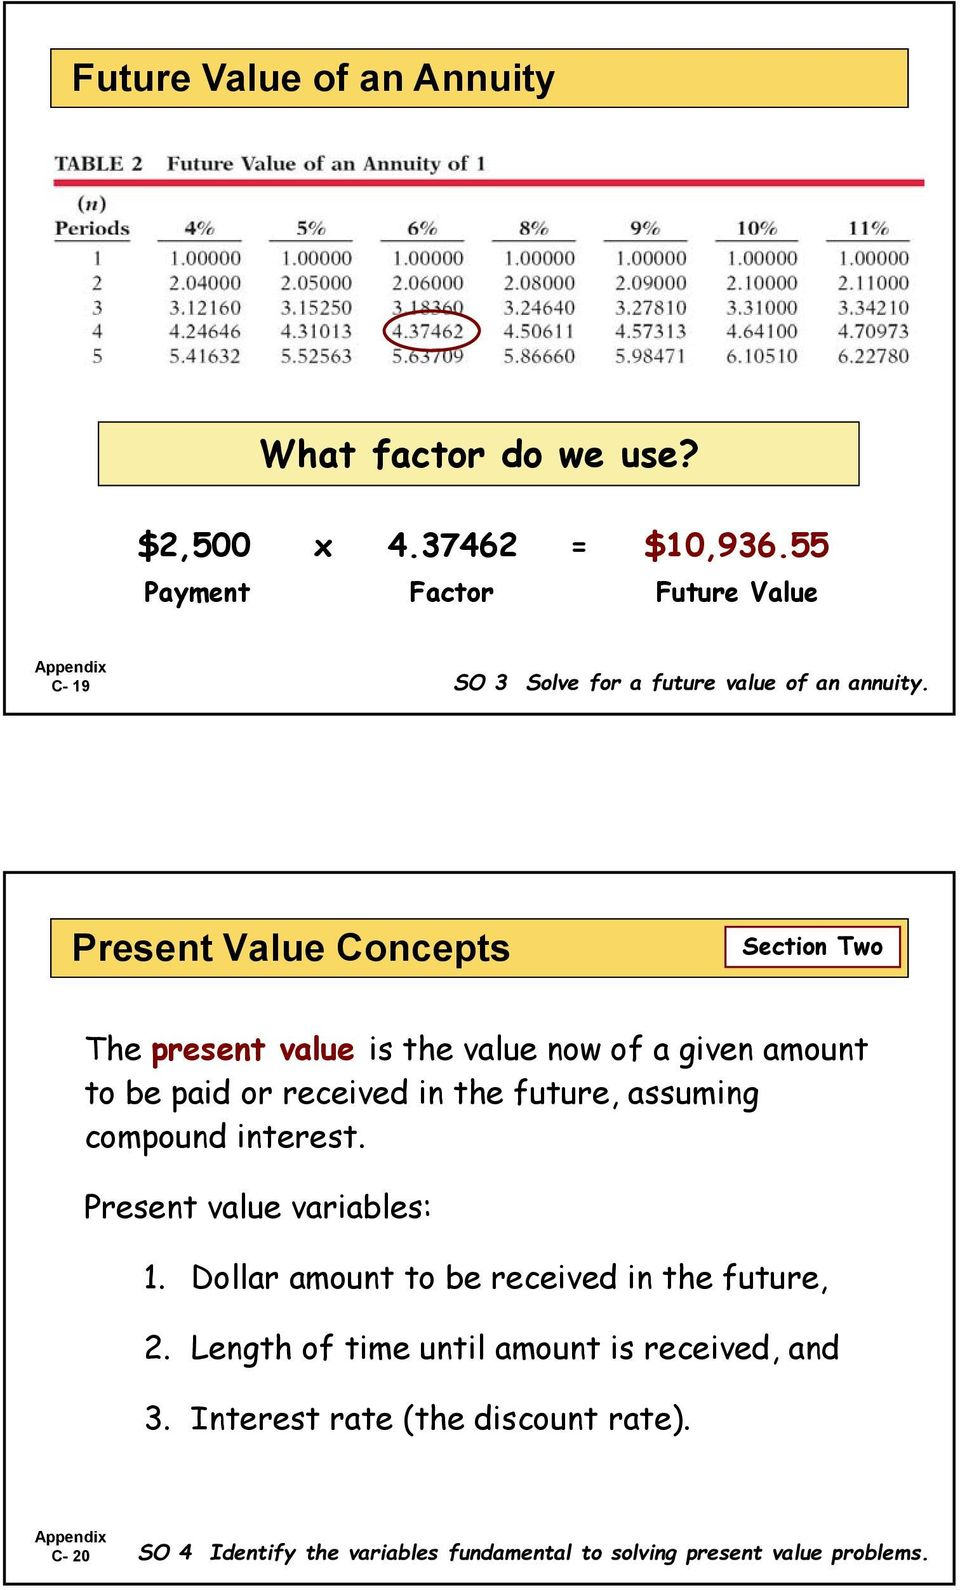 Present Value Concepts Section Two The present value is the value now of a given amount to be paid or received in the future, assuming